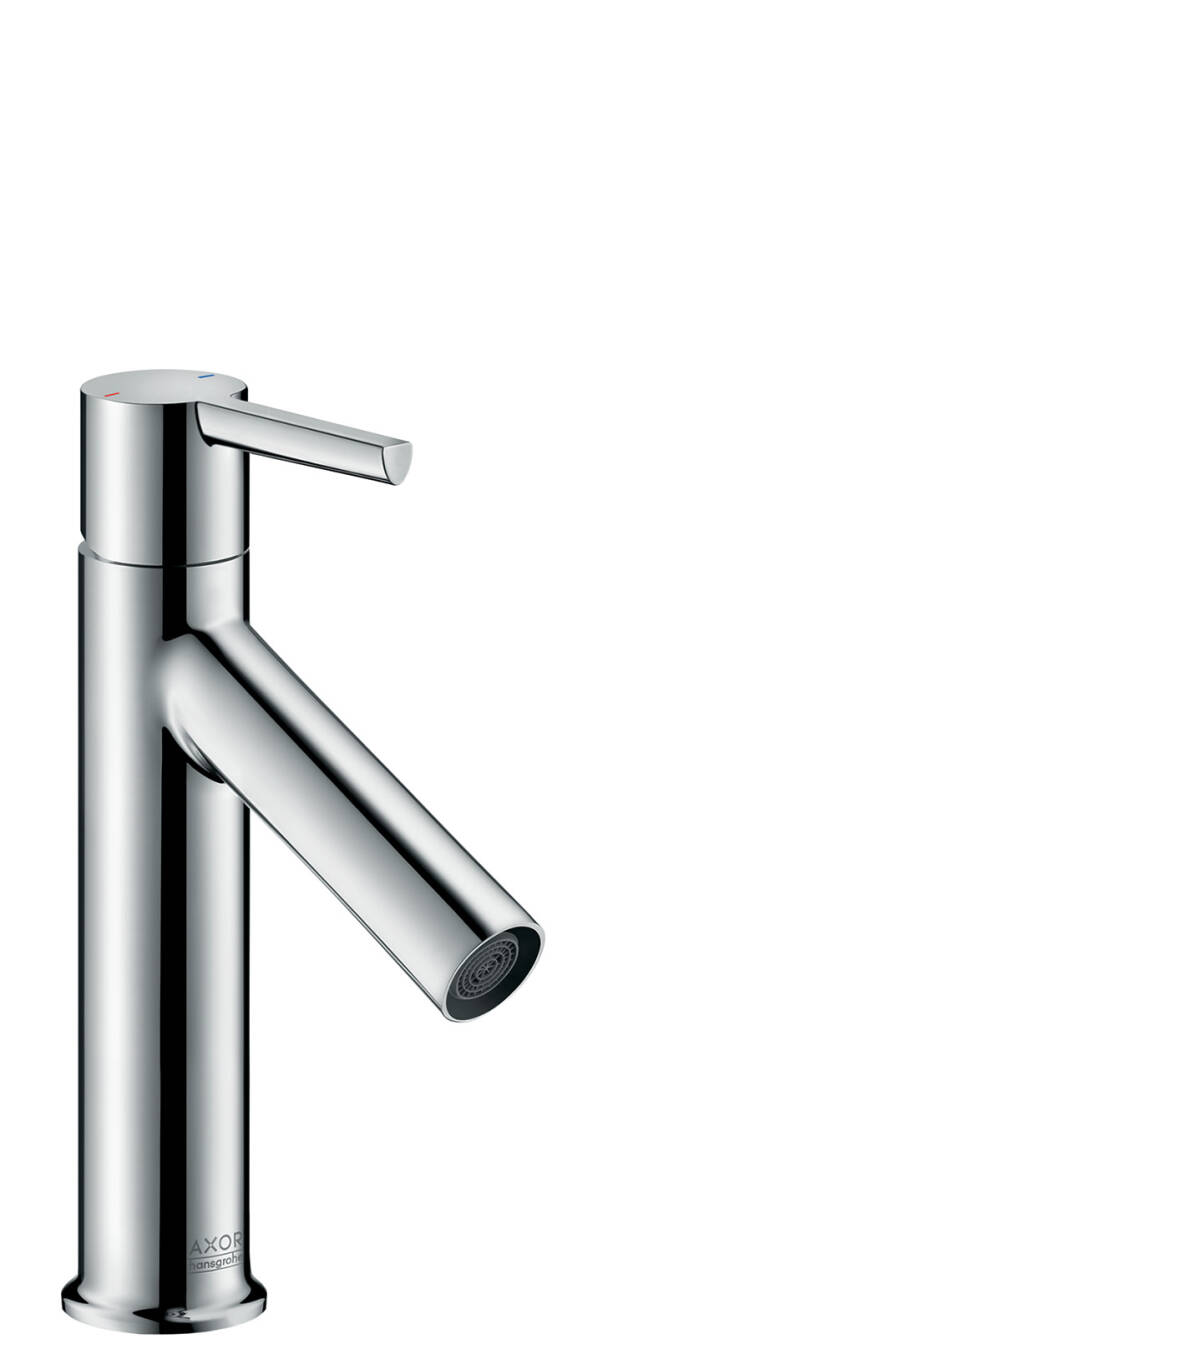 Single lever basin mixer 100 with lever handle and waste set, Chrome, 10003000